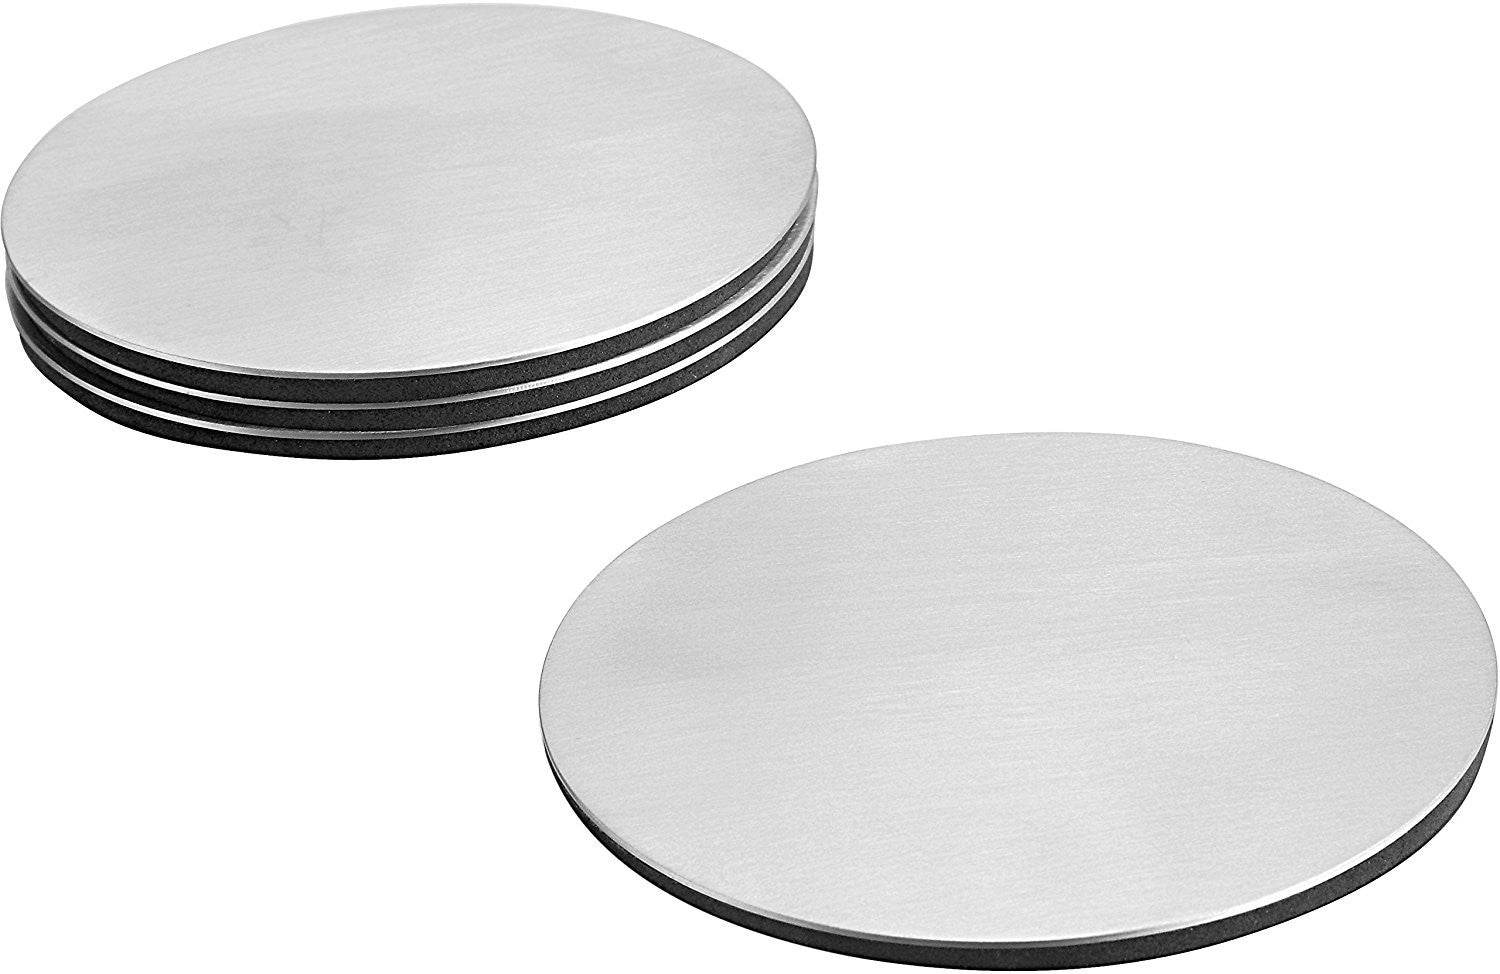 stainless drink coasters set of   pro chef kitchen tools -  glass drink coasters set of   for beer mats cup coaster tea